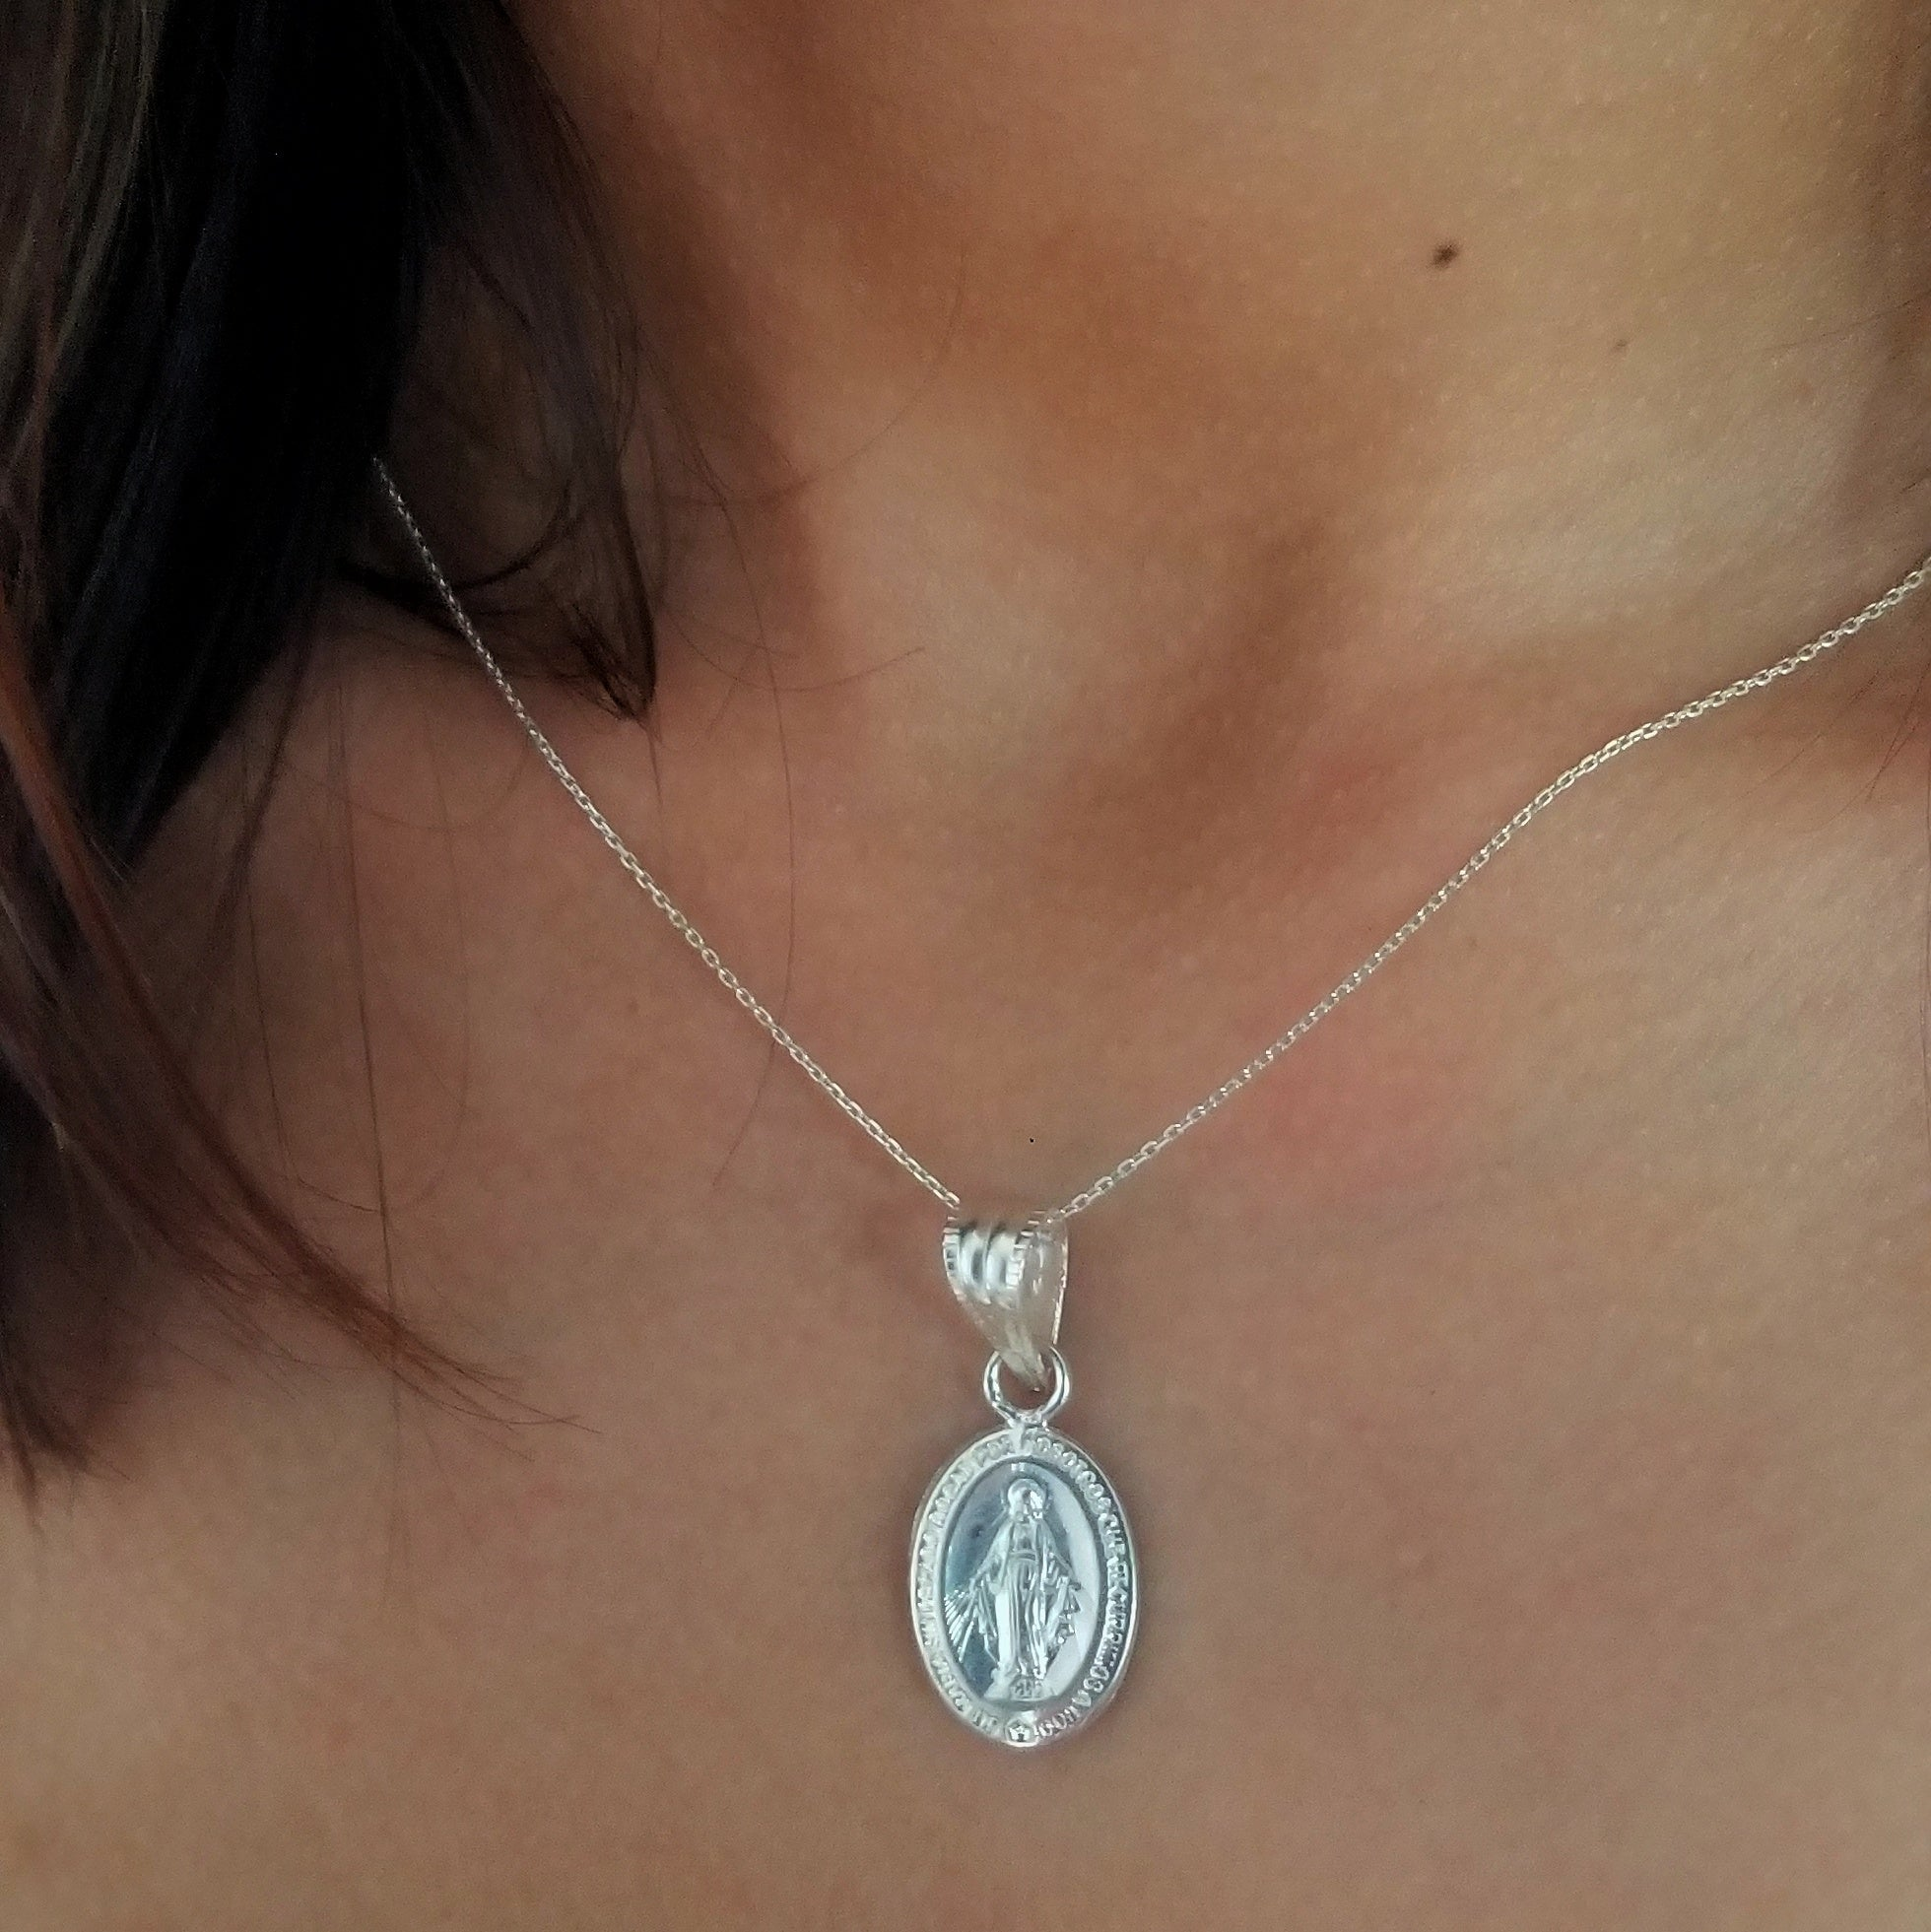 Chain and pendant miraculous Virgin Mary medal sterling silver first communion gift idea